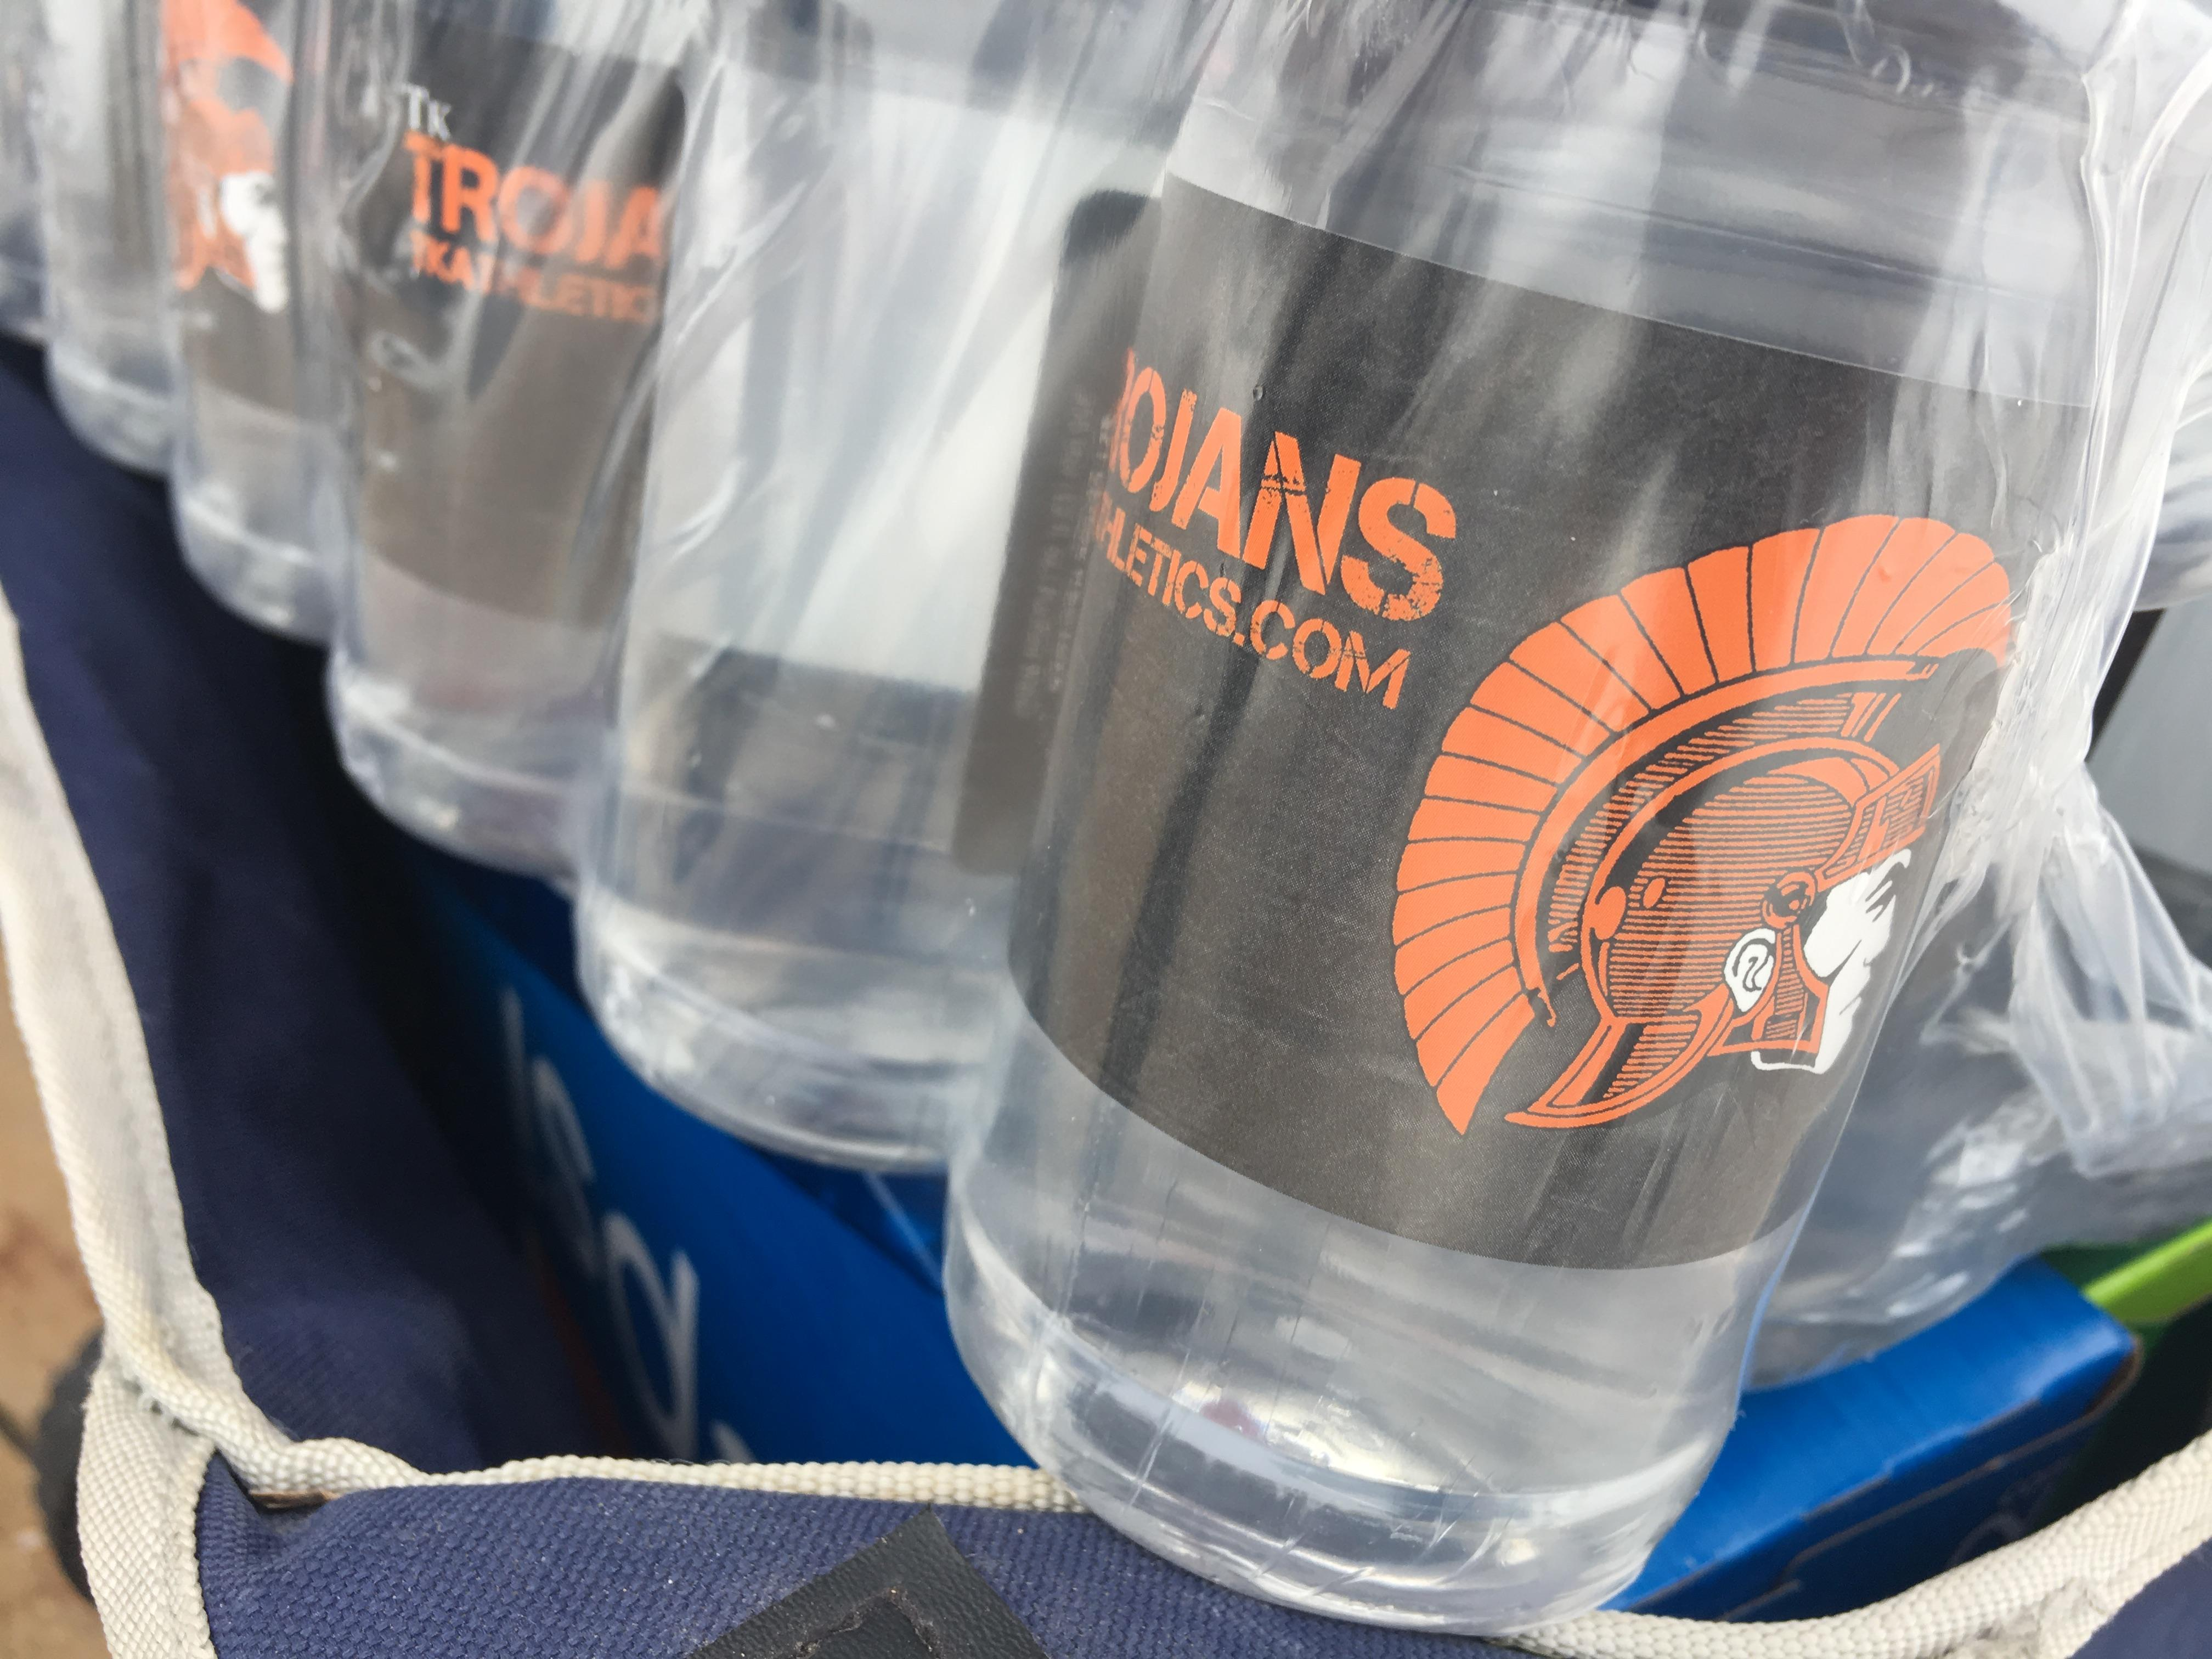 Bottled water is ready to be handed out to service workers and first responders in the Thornapple Kellogg community.{ }Students handed them out to thank those who have to work in these winter conditions. Feb. 14, 2019.{ } (WWMT/Jason Heeres)